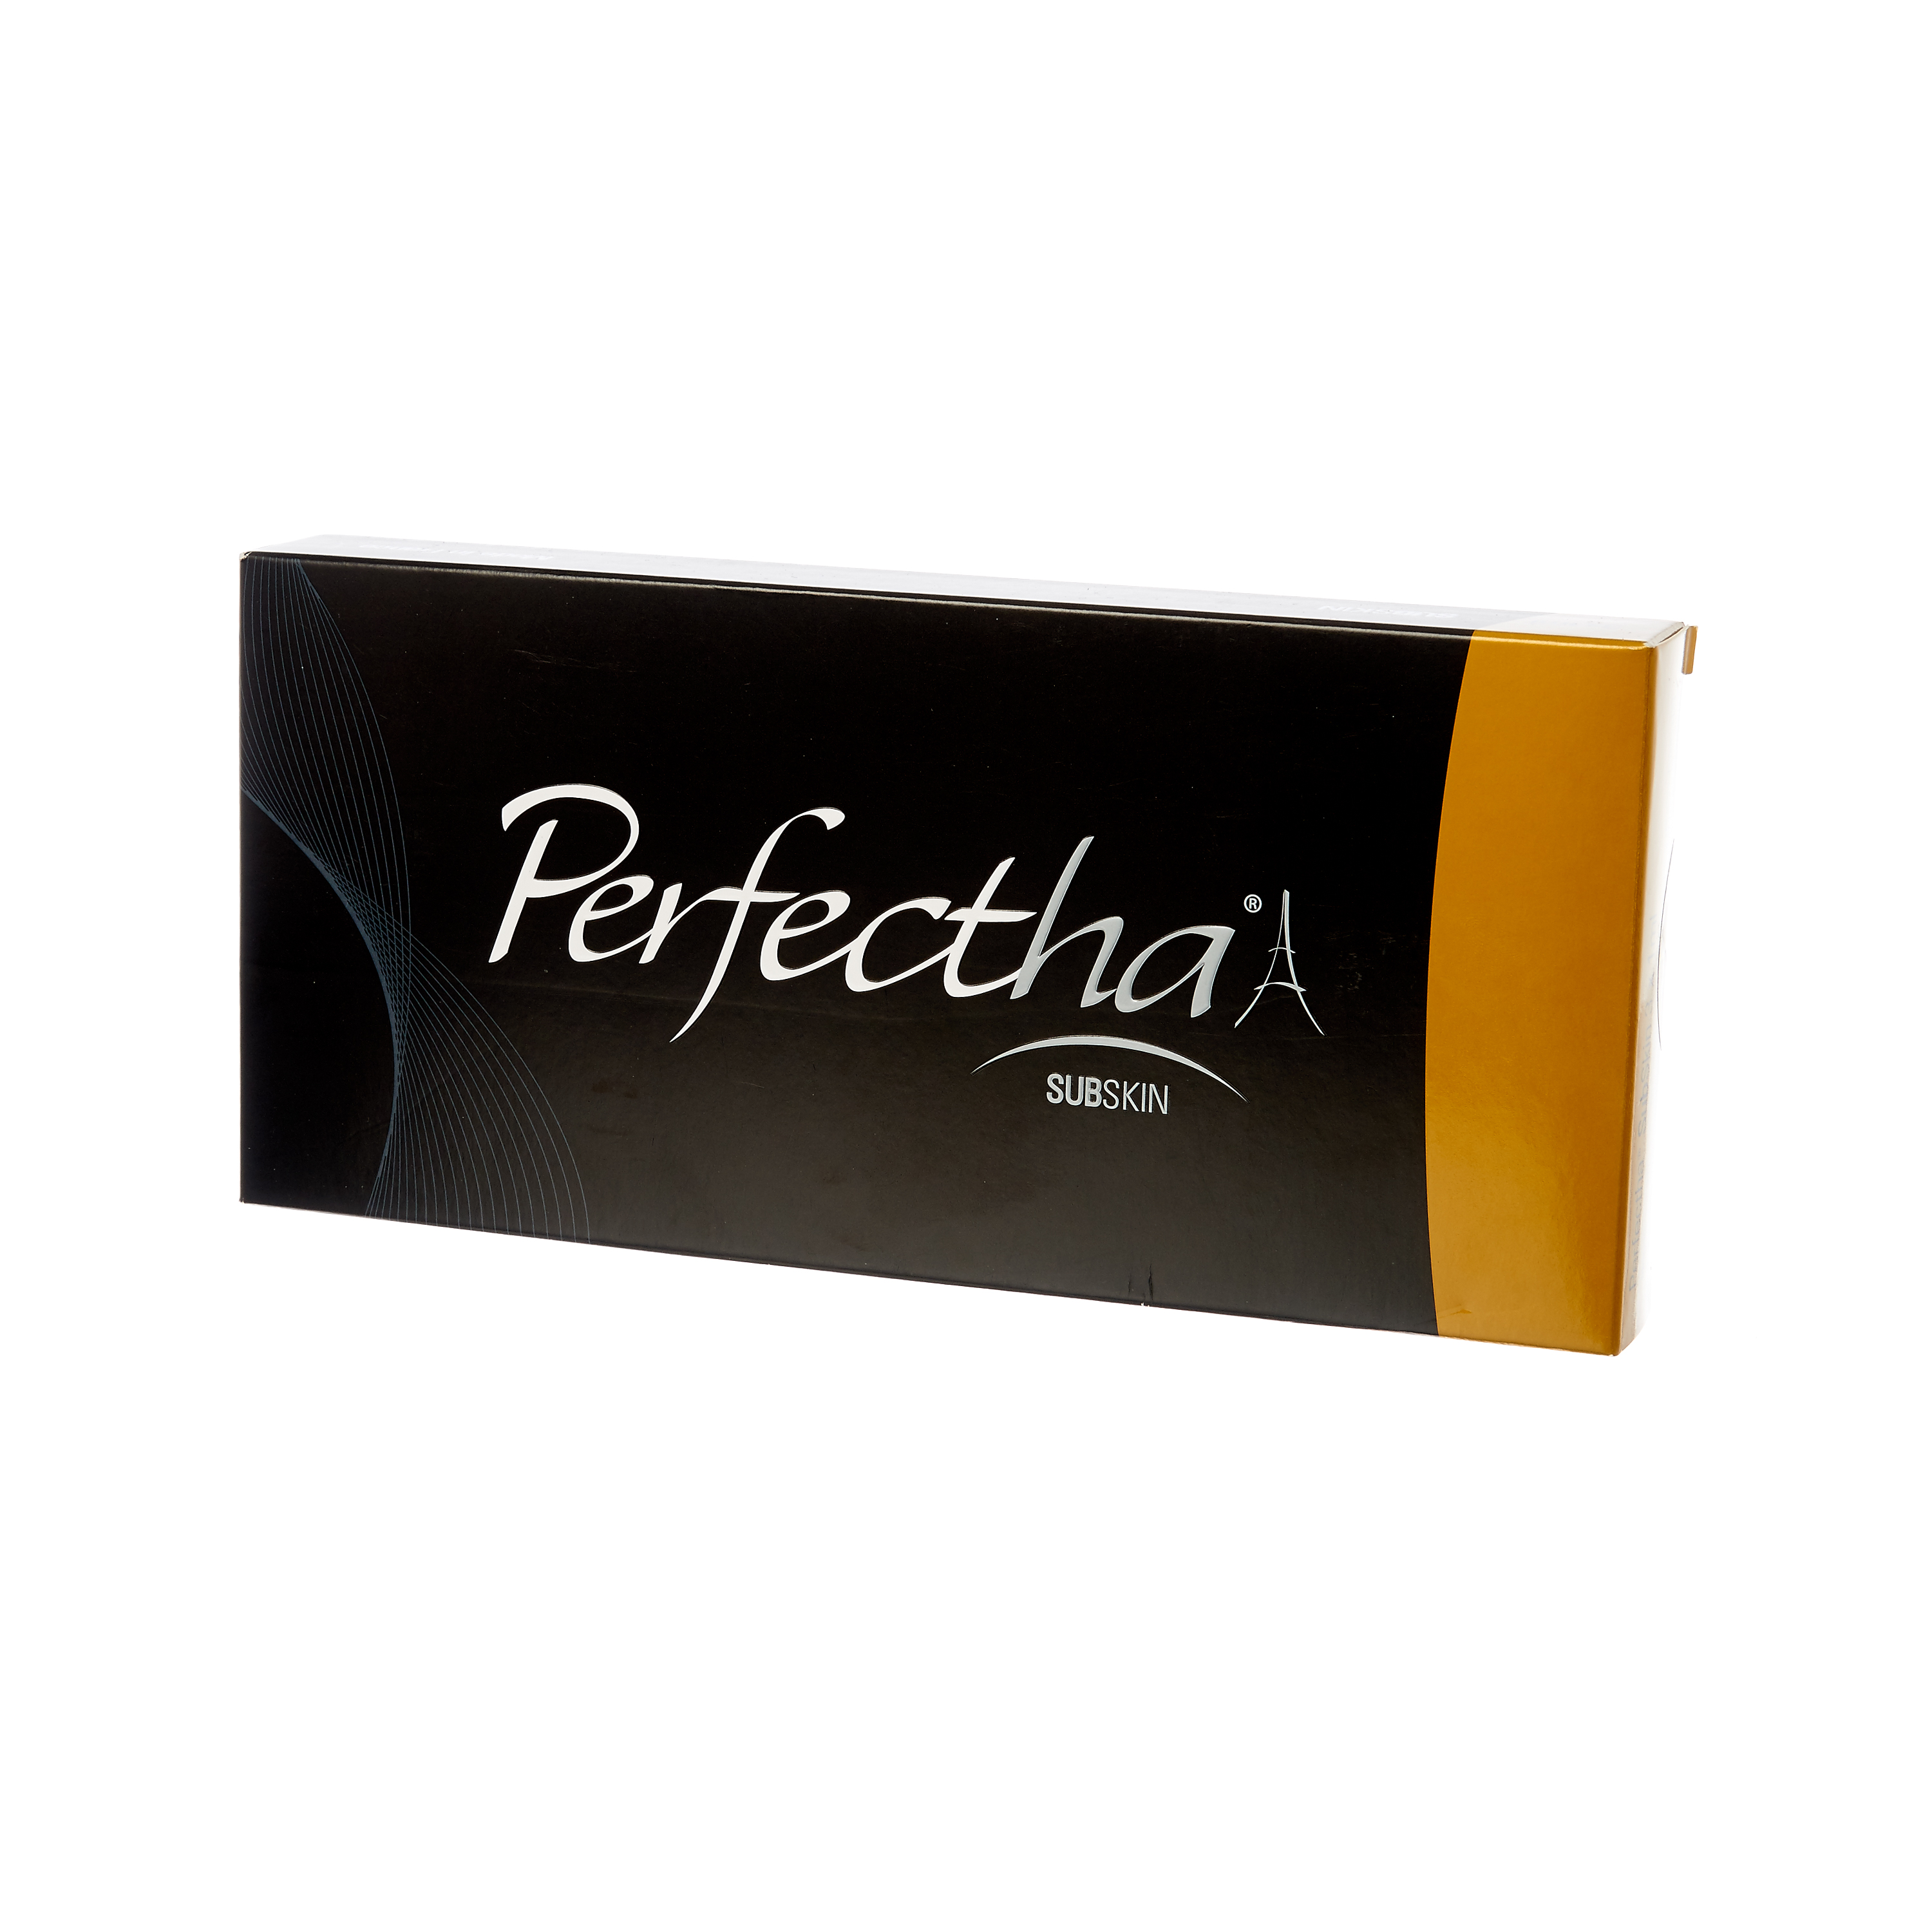 Buy Perfectha Subskin